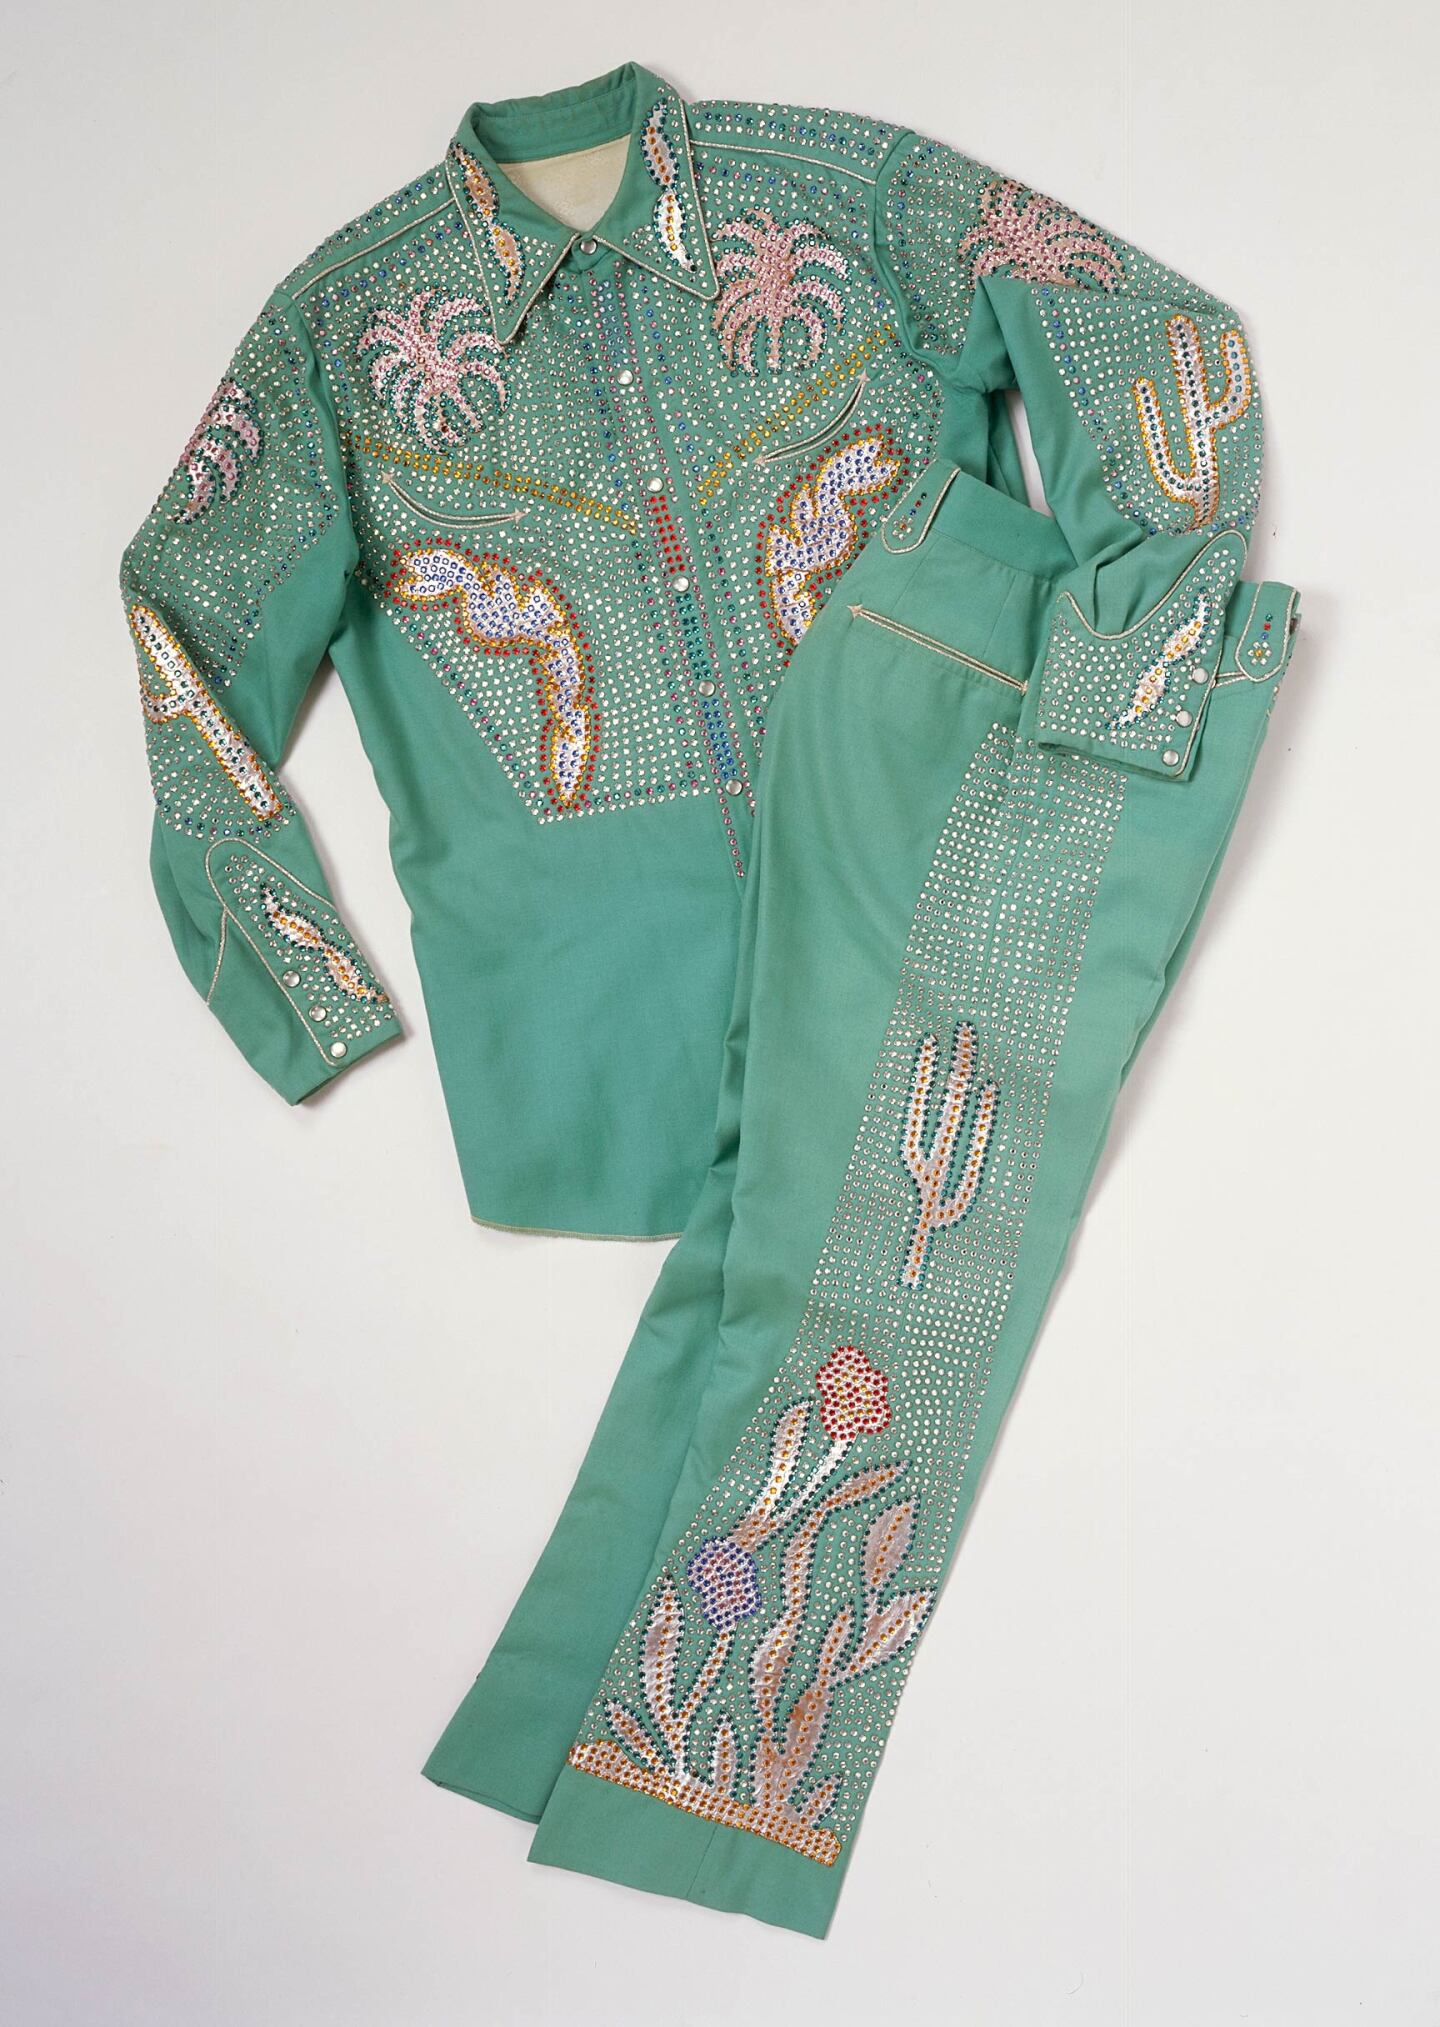 Nathan Turk outfit with palm trees and cacti set with rhinestones. Custom made for B.L. Lake. | Courtesy of Autry Museum of the American West